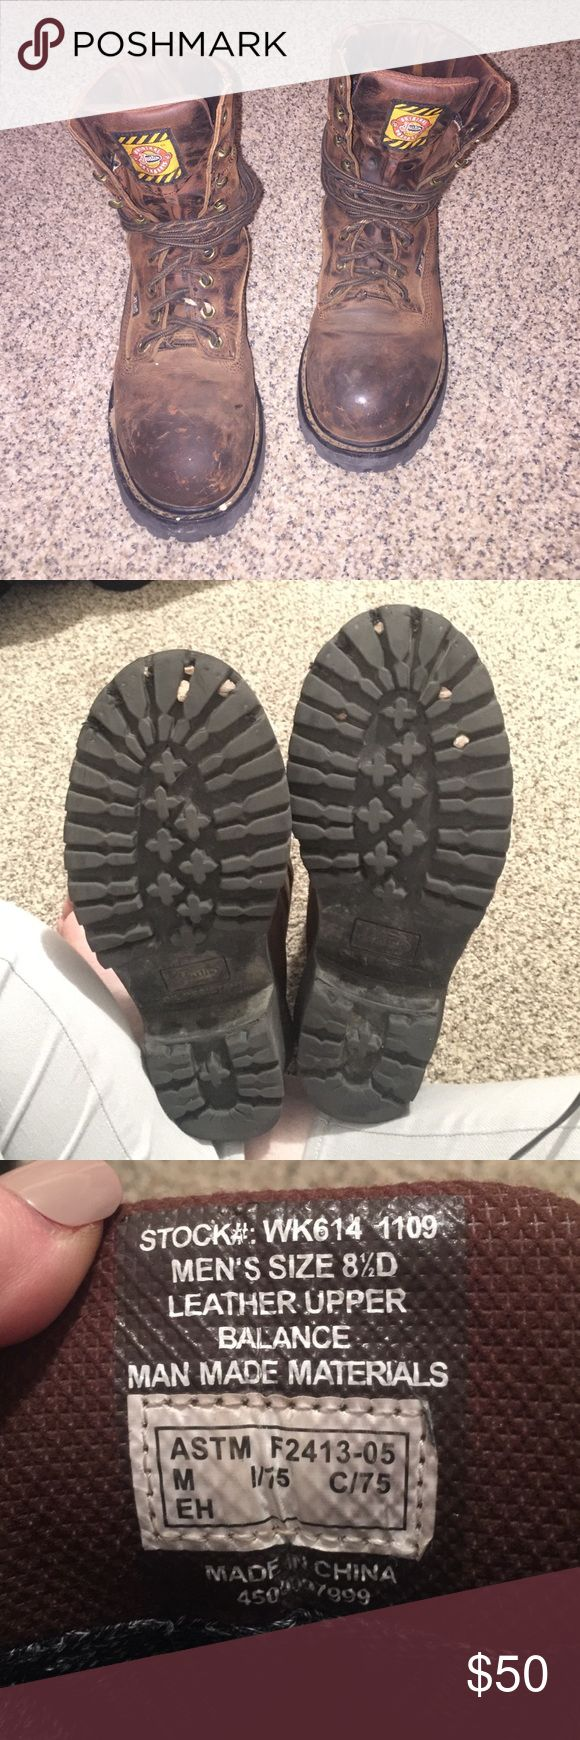 """Justin Work boots Mens """"logger"""" gore tex Justin work boots very used has scratches on both toe areas as well as the laces threading apart has two paint drops on the right shoe see last picture, bottoms though are in good used condition size mens 8 1/2D leather steal toe and oil resistant. Open to reasonable offers Justin Boots Shoes Boots"""